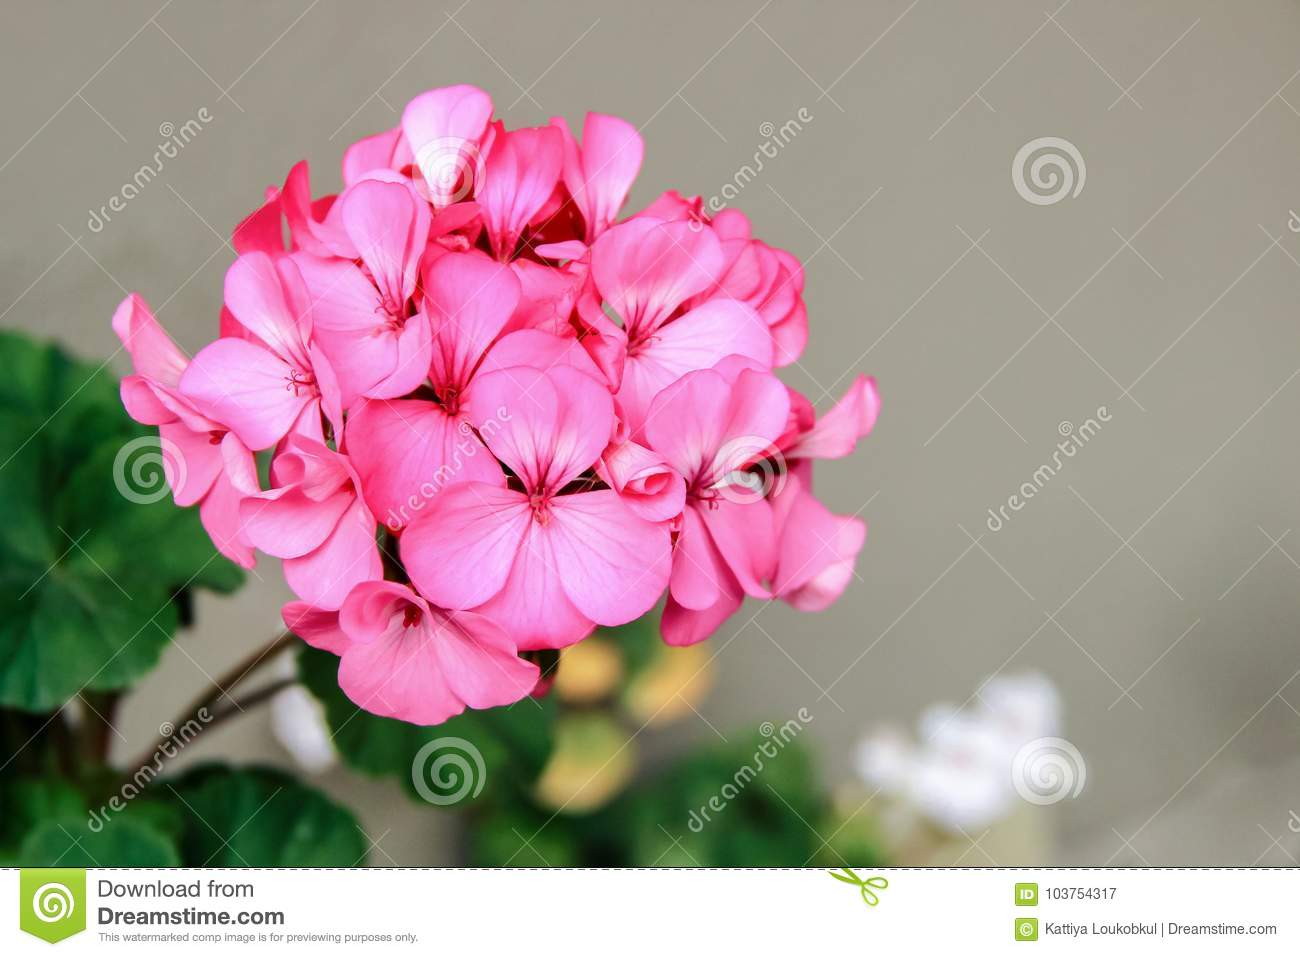 pink vinca flowers stock image image of park blossom 103754317